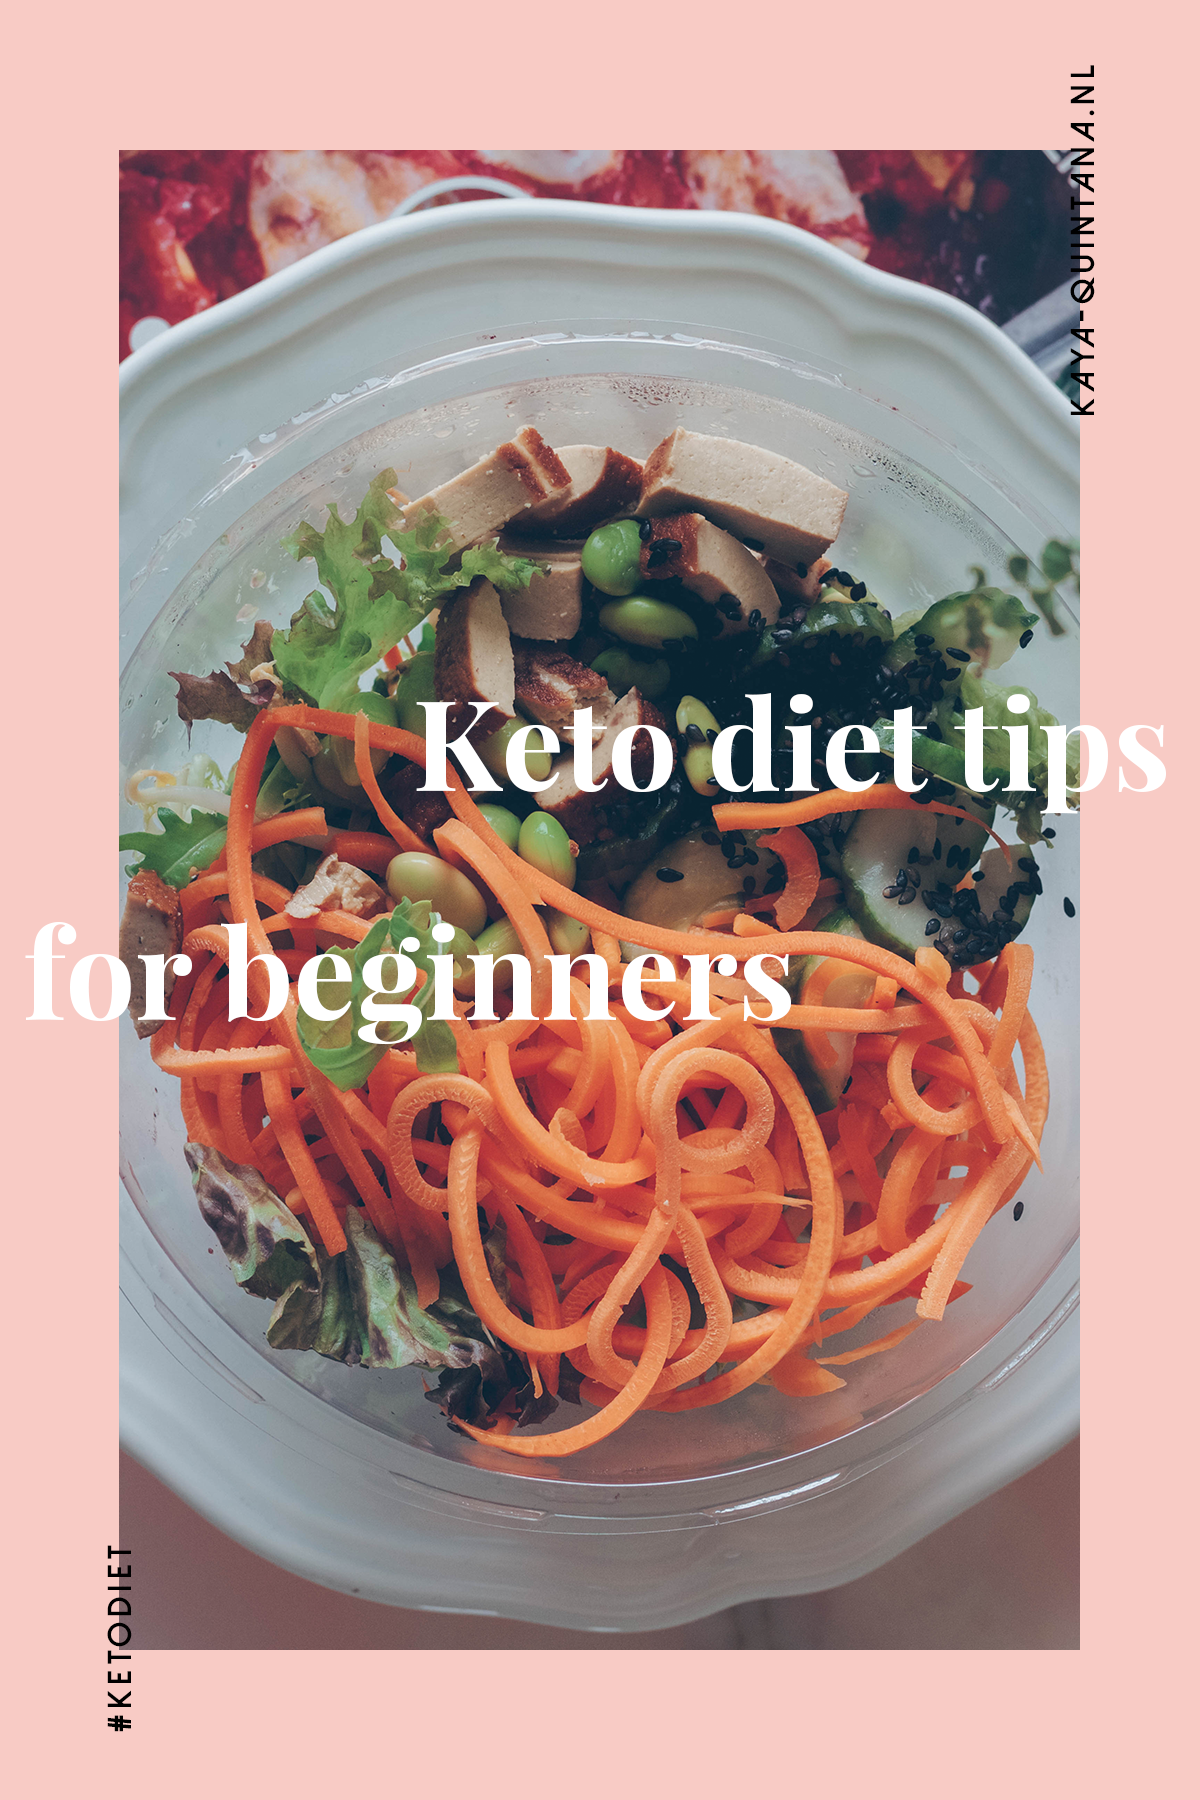 Keto tips for beginners